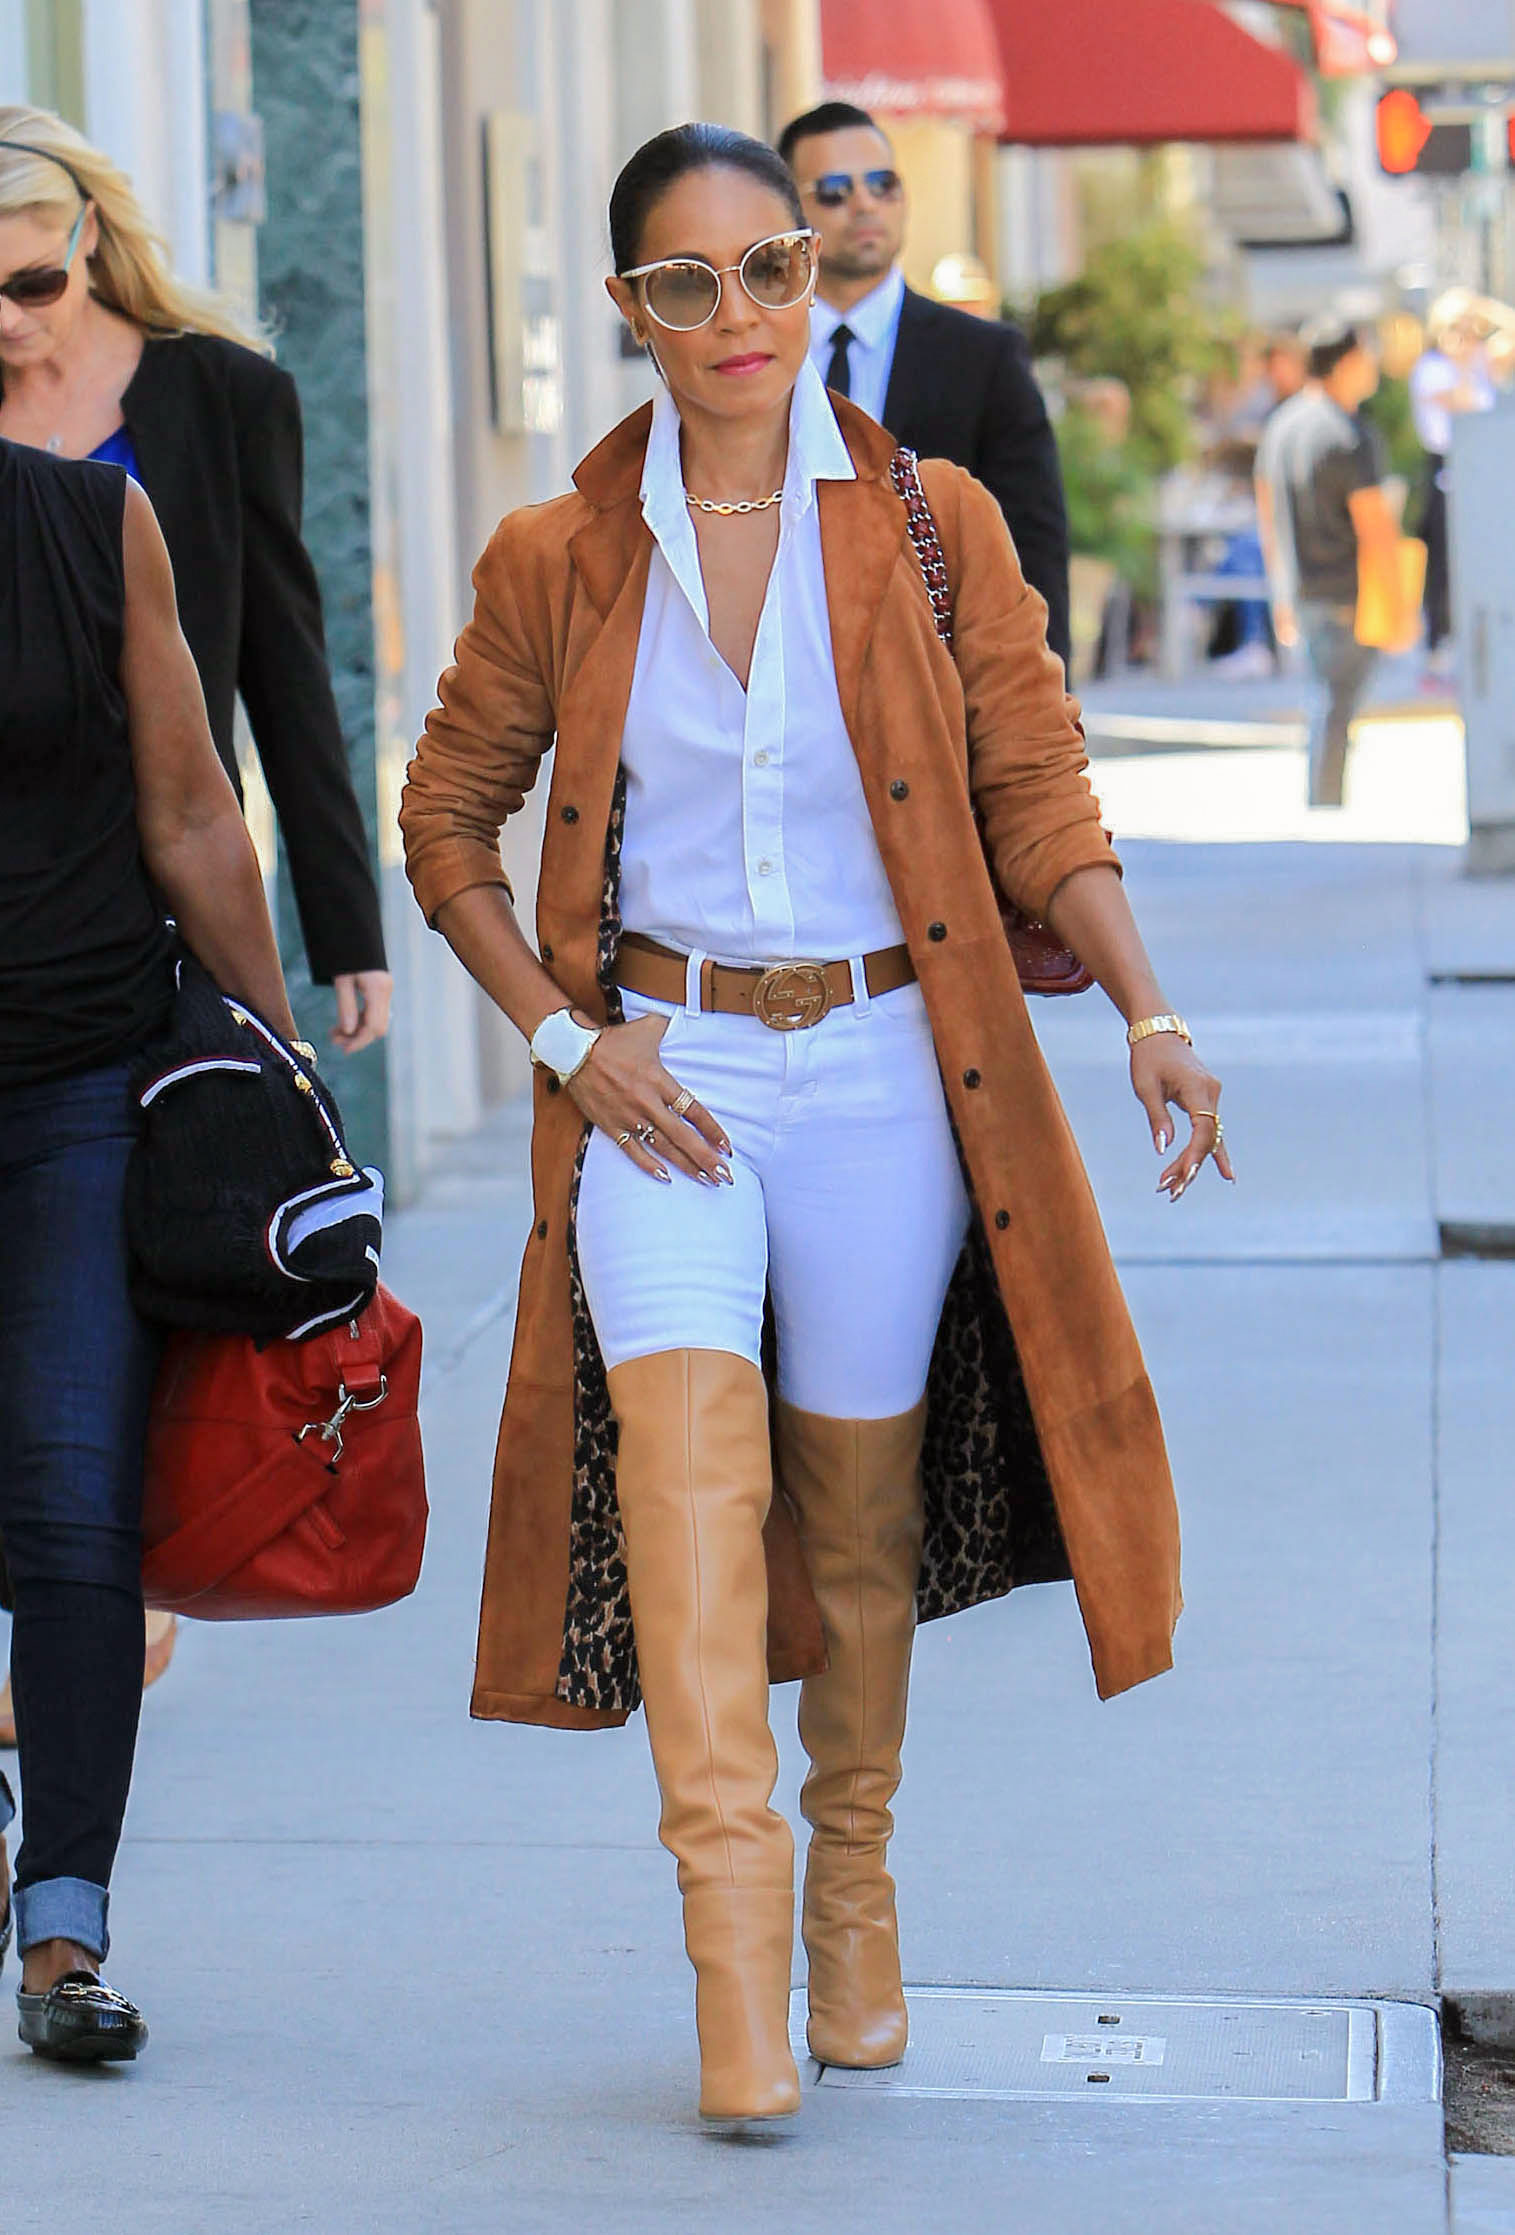 Jada Pinkett Smith wears a camel suede trench coat with a white button-down shirt, white skinny jeans, and cognac over-the-knee boots.